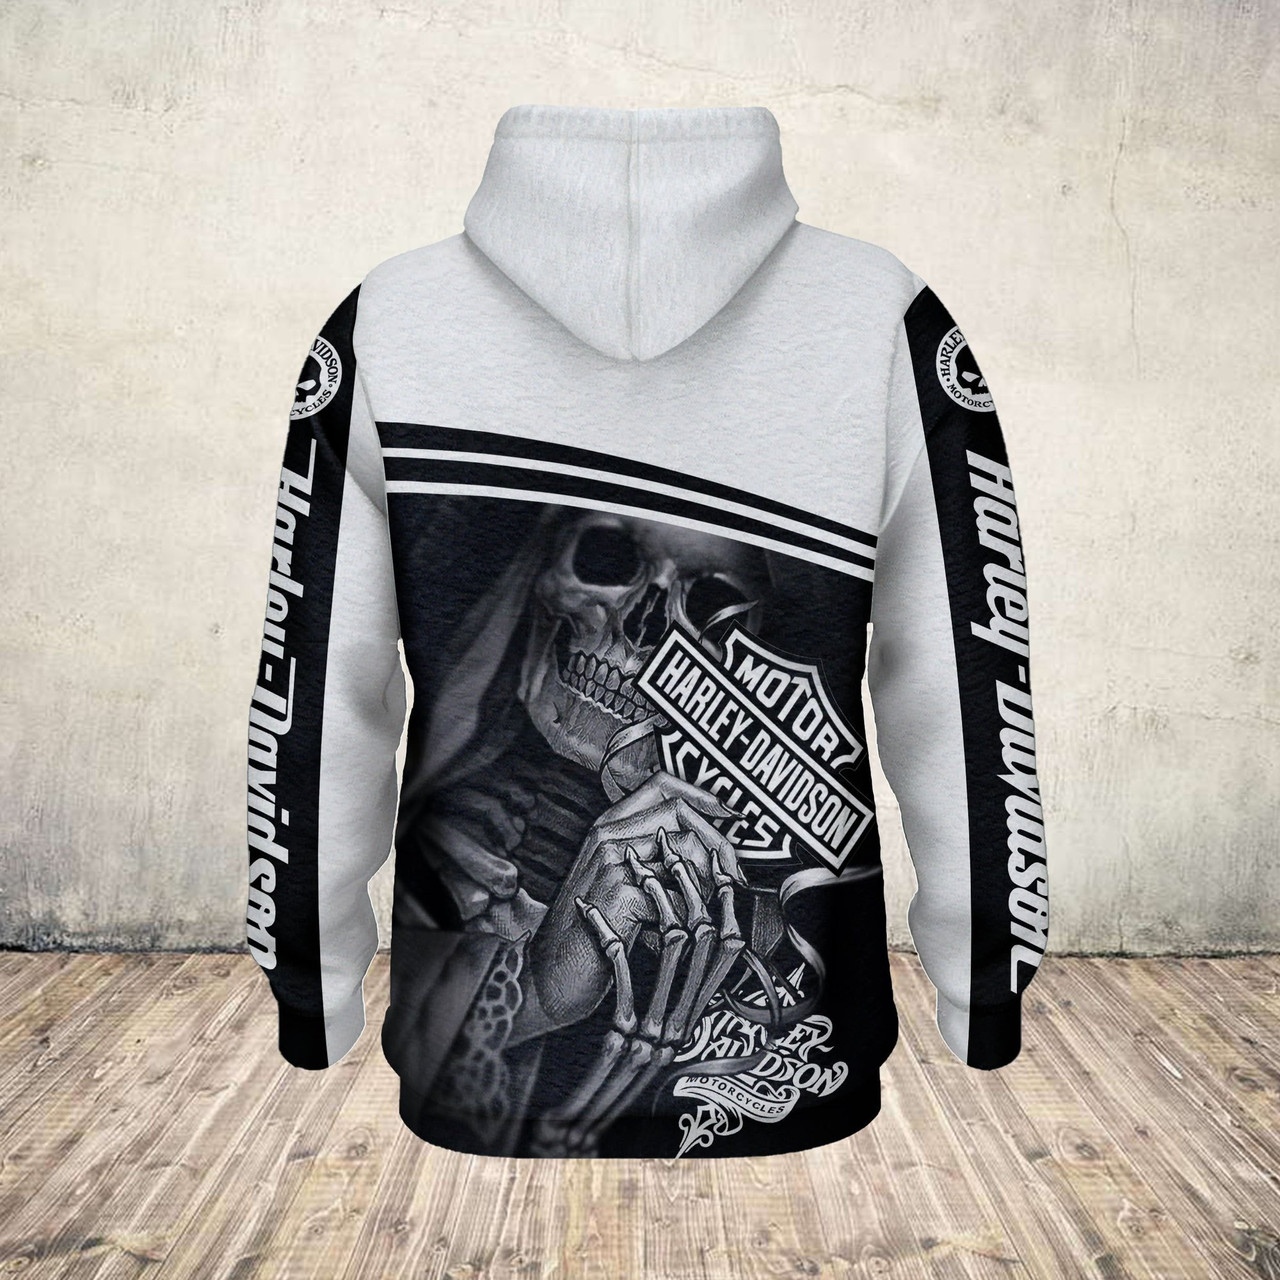 (OFFICIAL HARLEY DAVIDSON MOTORCYCLE PULLOVER HOODIESCUSTOM DETAILED 3D GRAPHIC PRINTED CLASSIC BLACK &